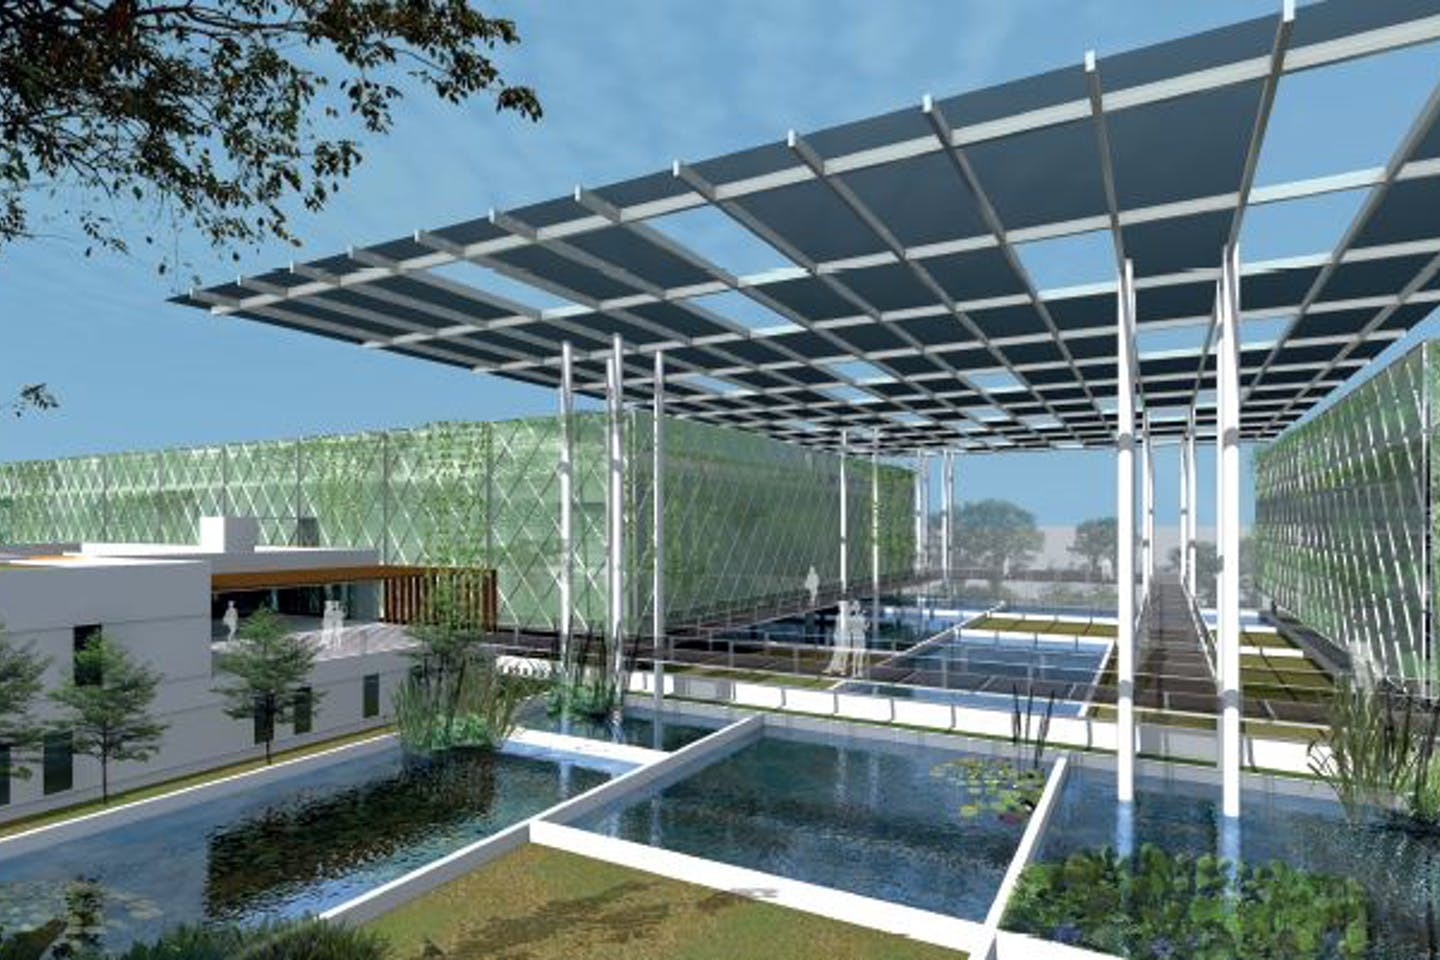 A rendering of the Floating Ponds vertical fish farm conceptualised by Surbana Jurong and Apollo Aquaculture Group